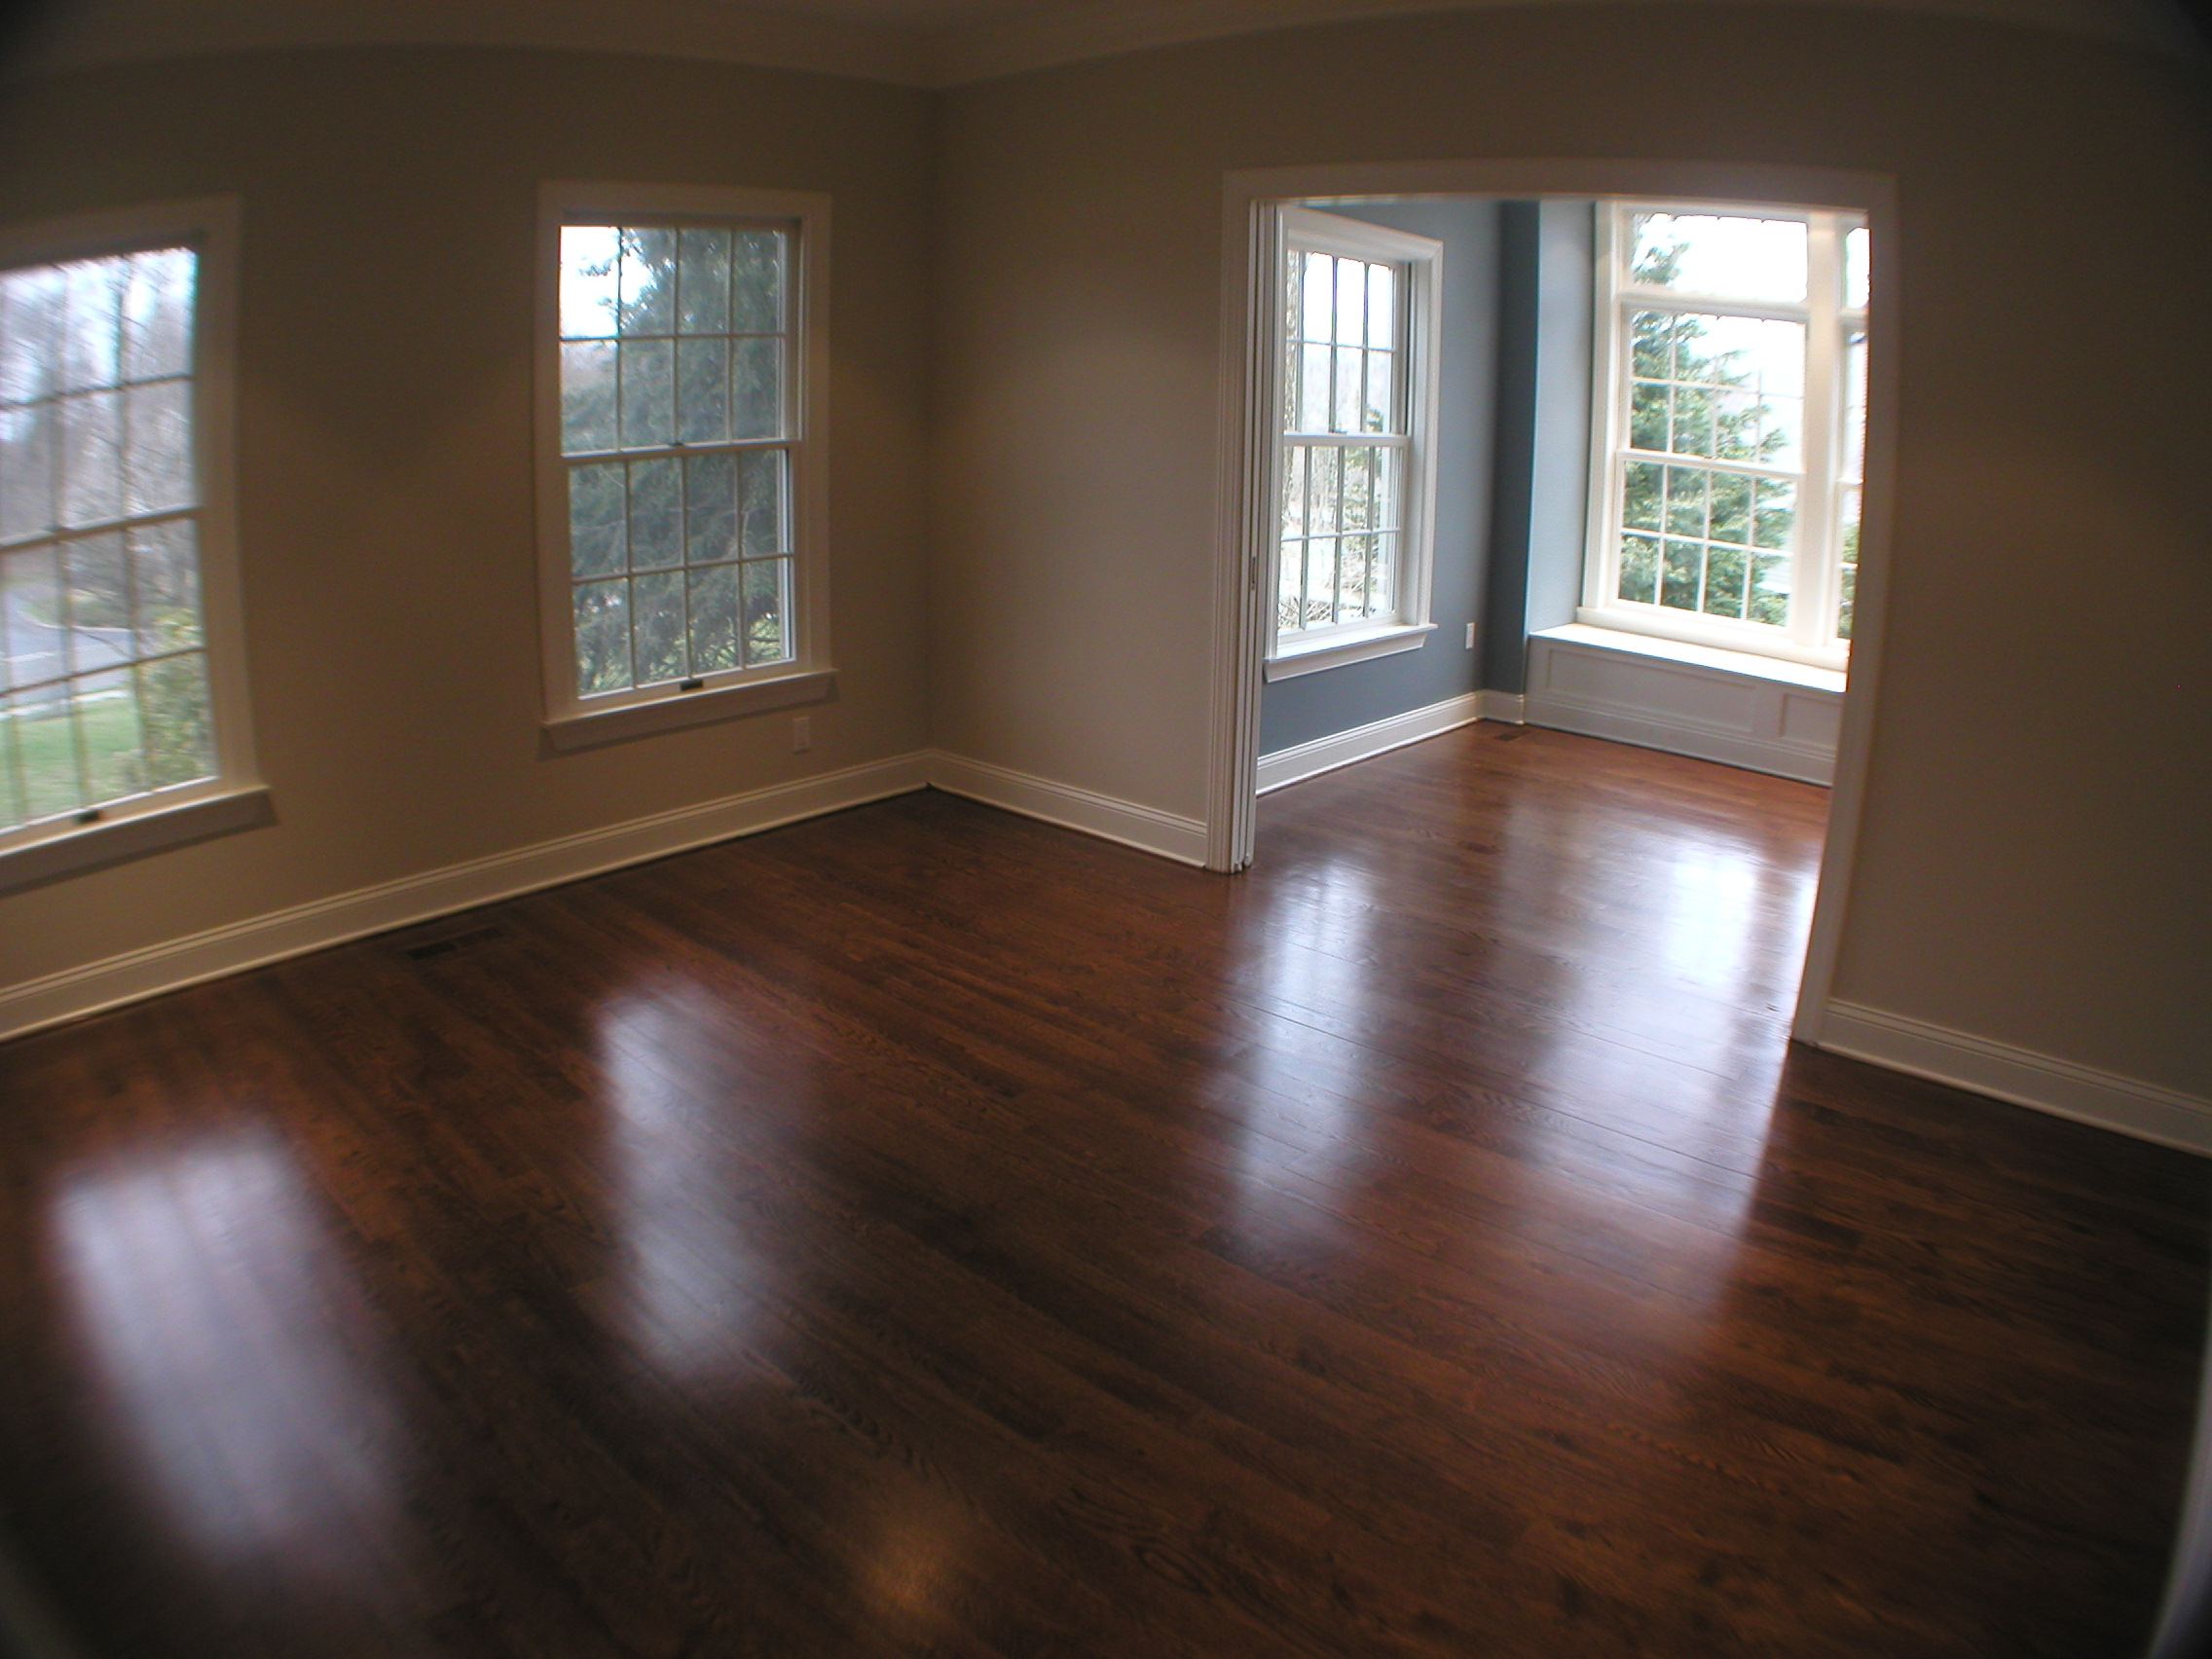 refinishing images refinish wood cost of fascinating sanding colors floors floor delightful the hardwood without